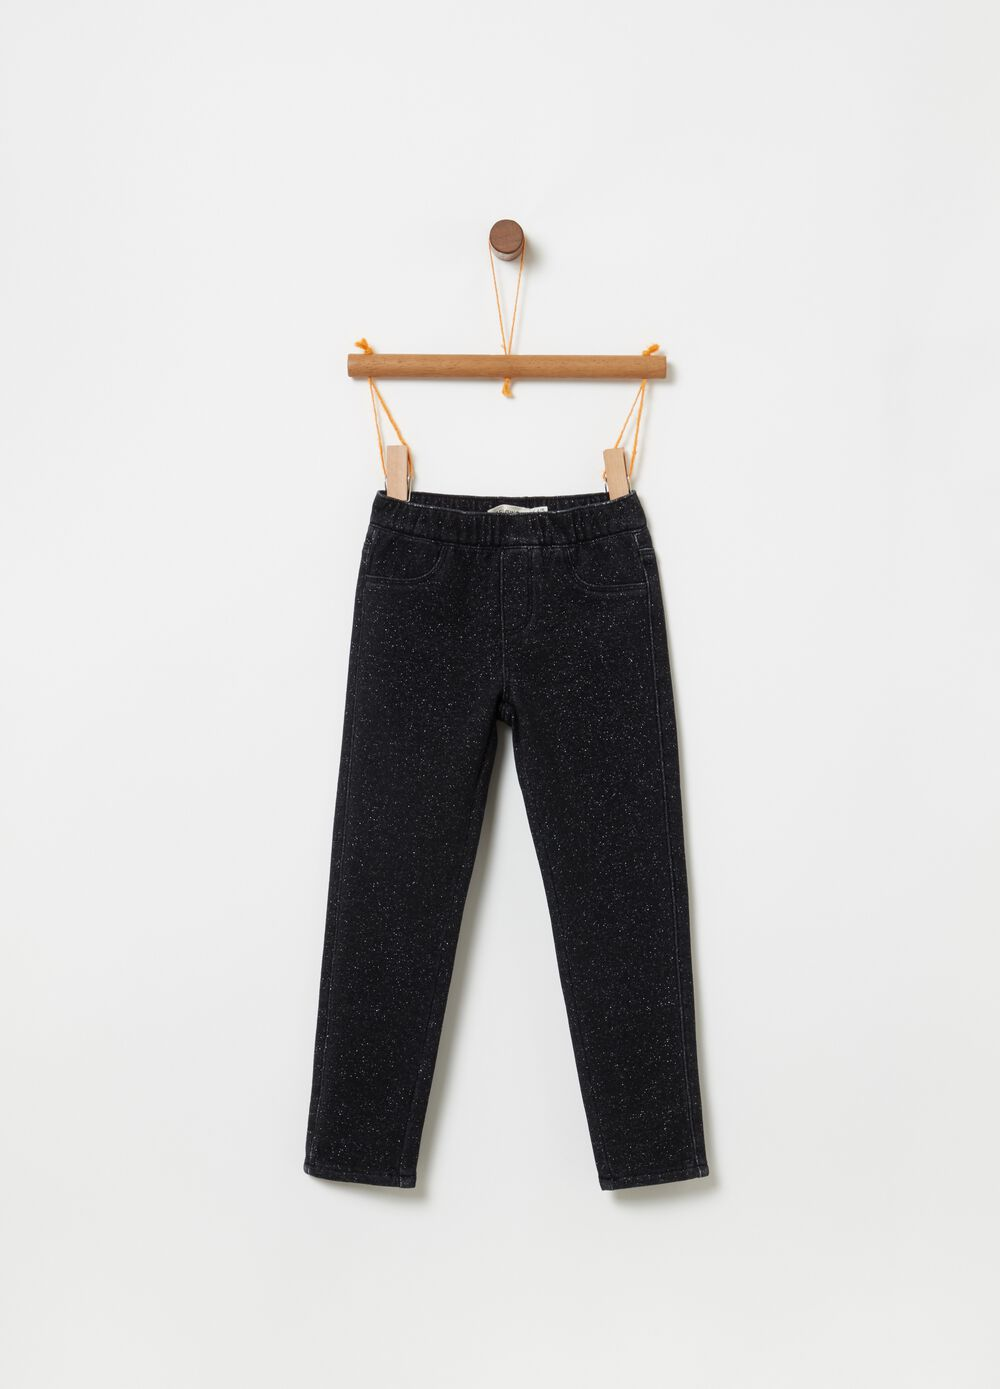 Stretch lurex jeggings with pockets